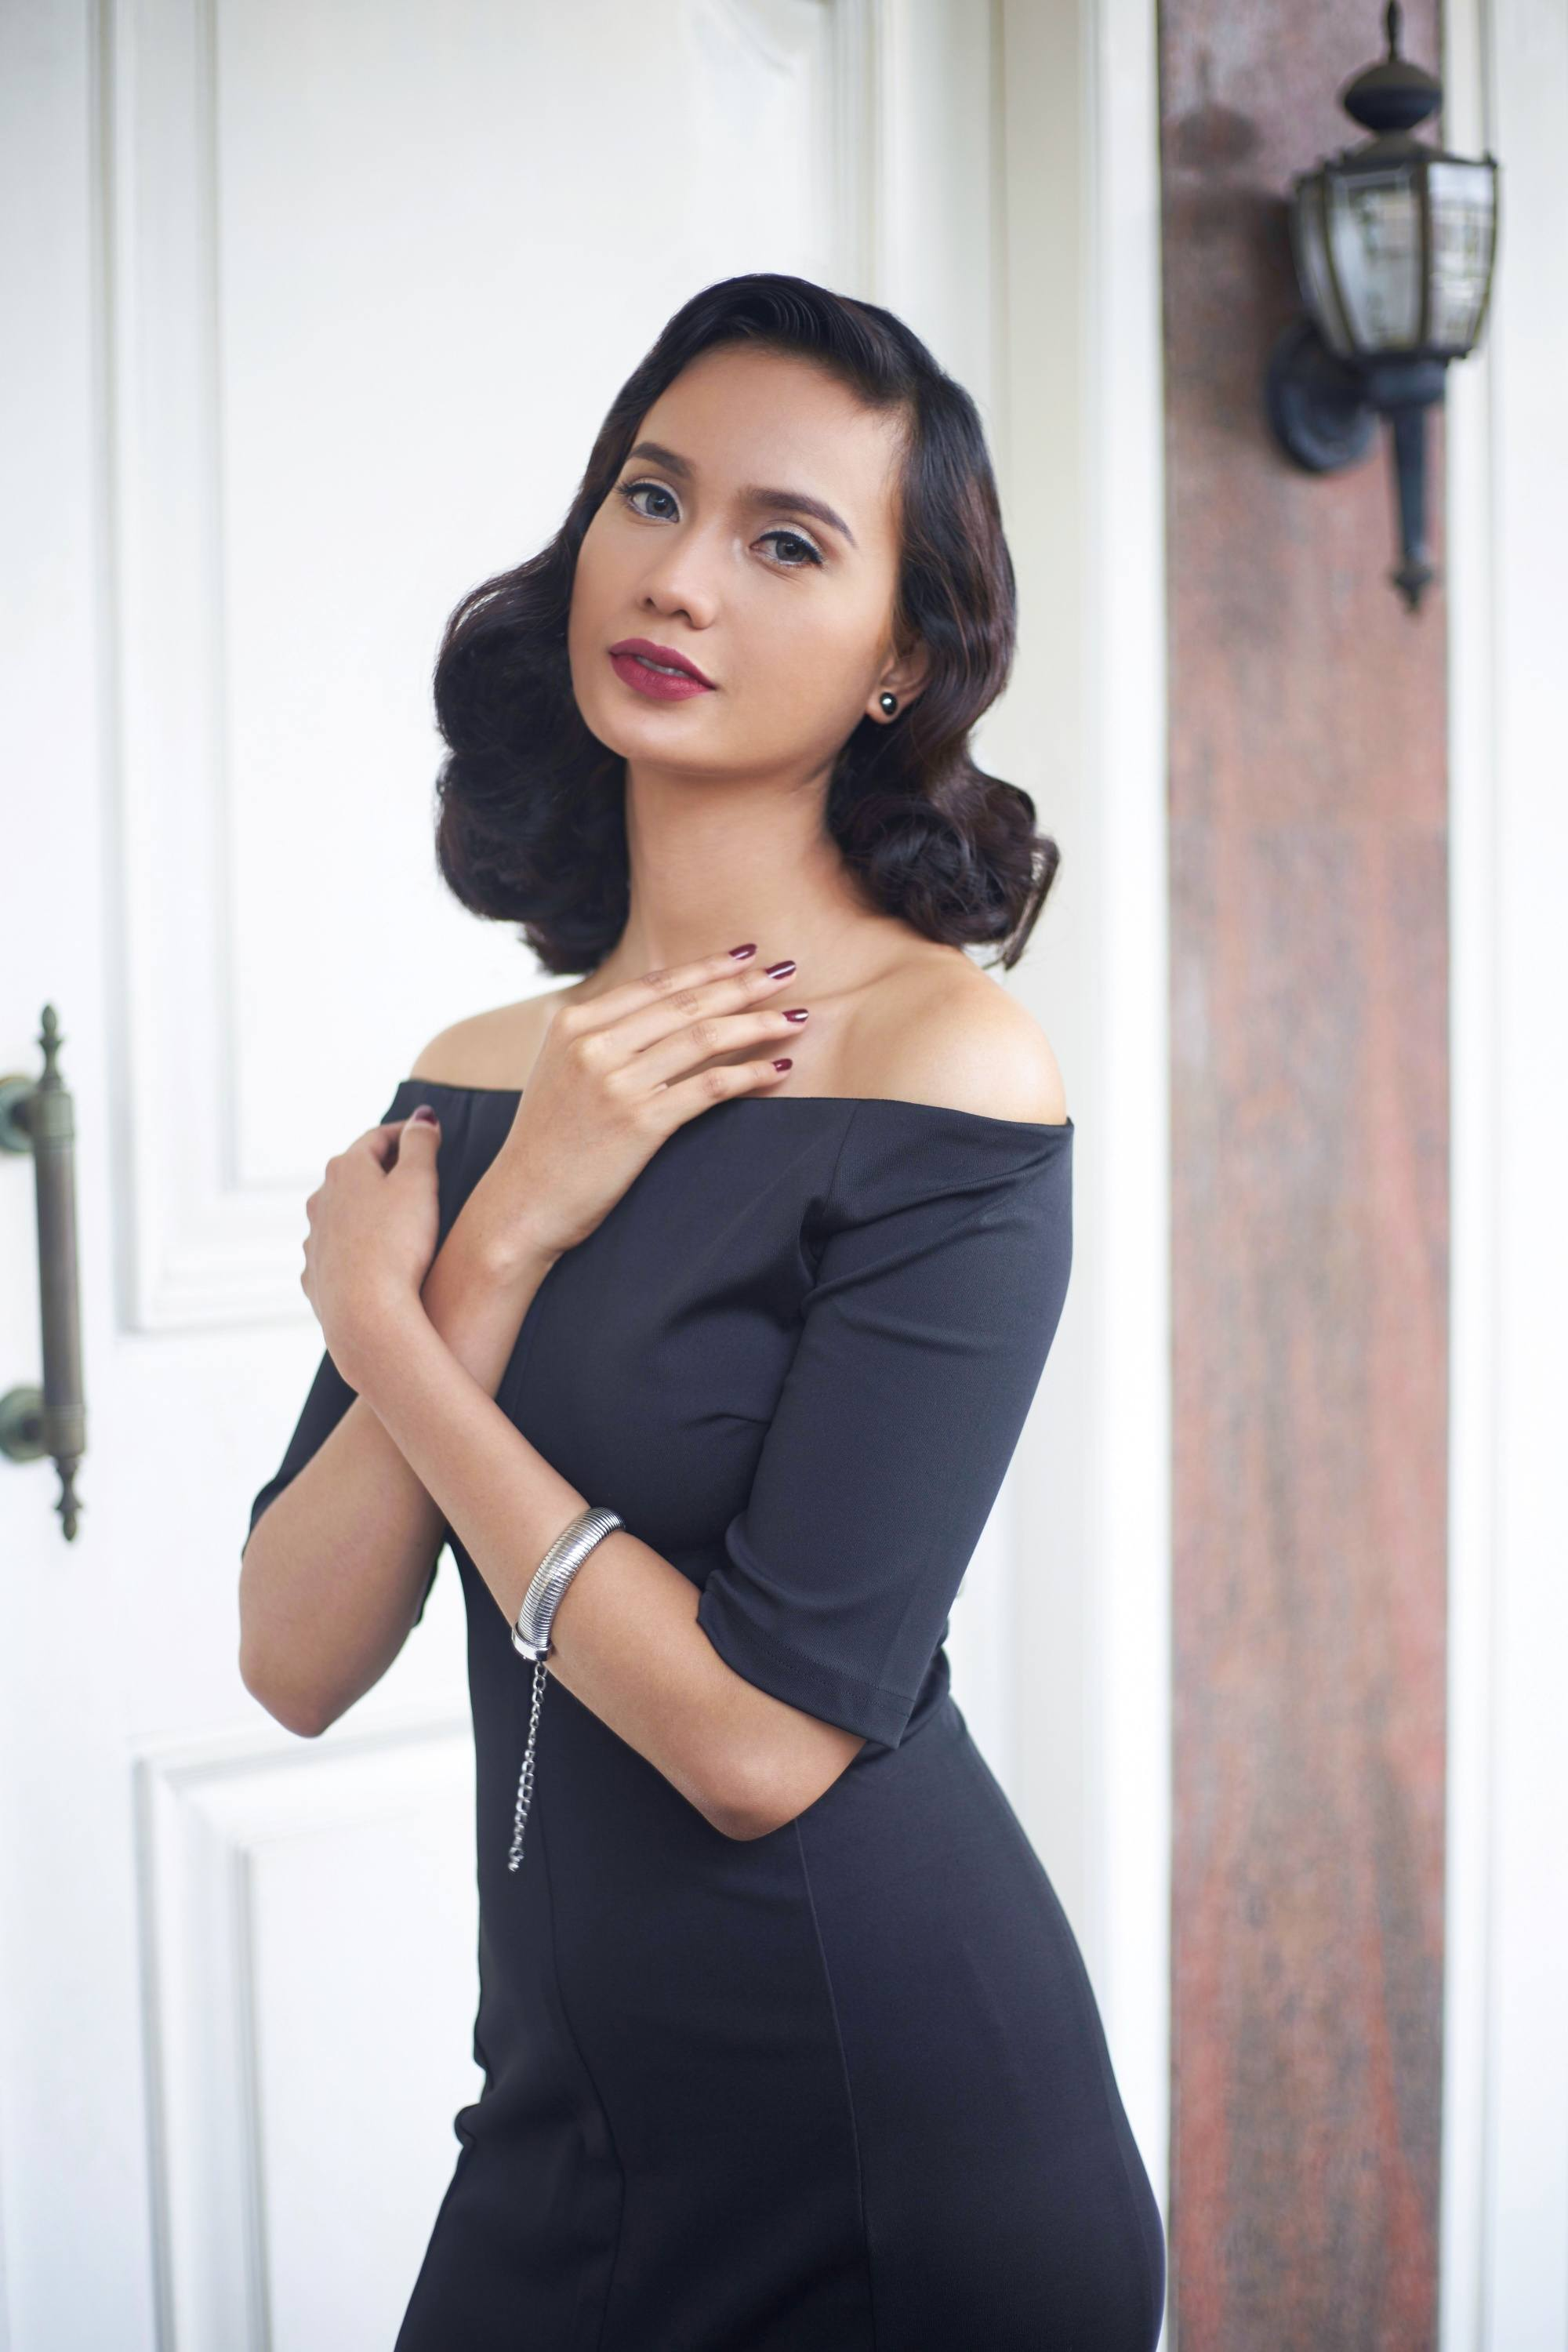 Asian woman with dark shoulder-length curly hair wearing an off-shoulder dress